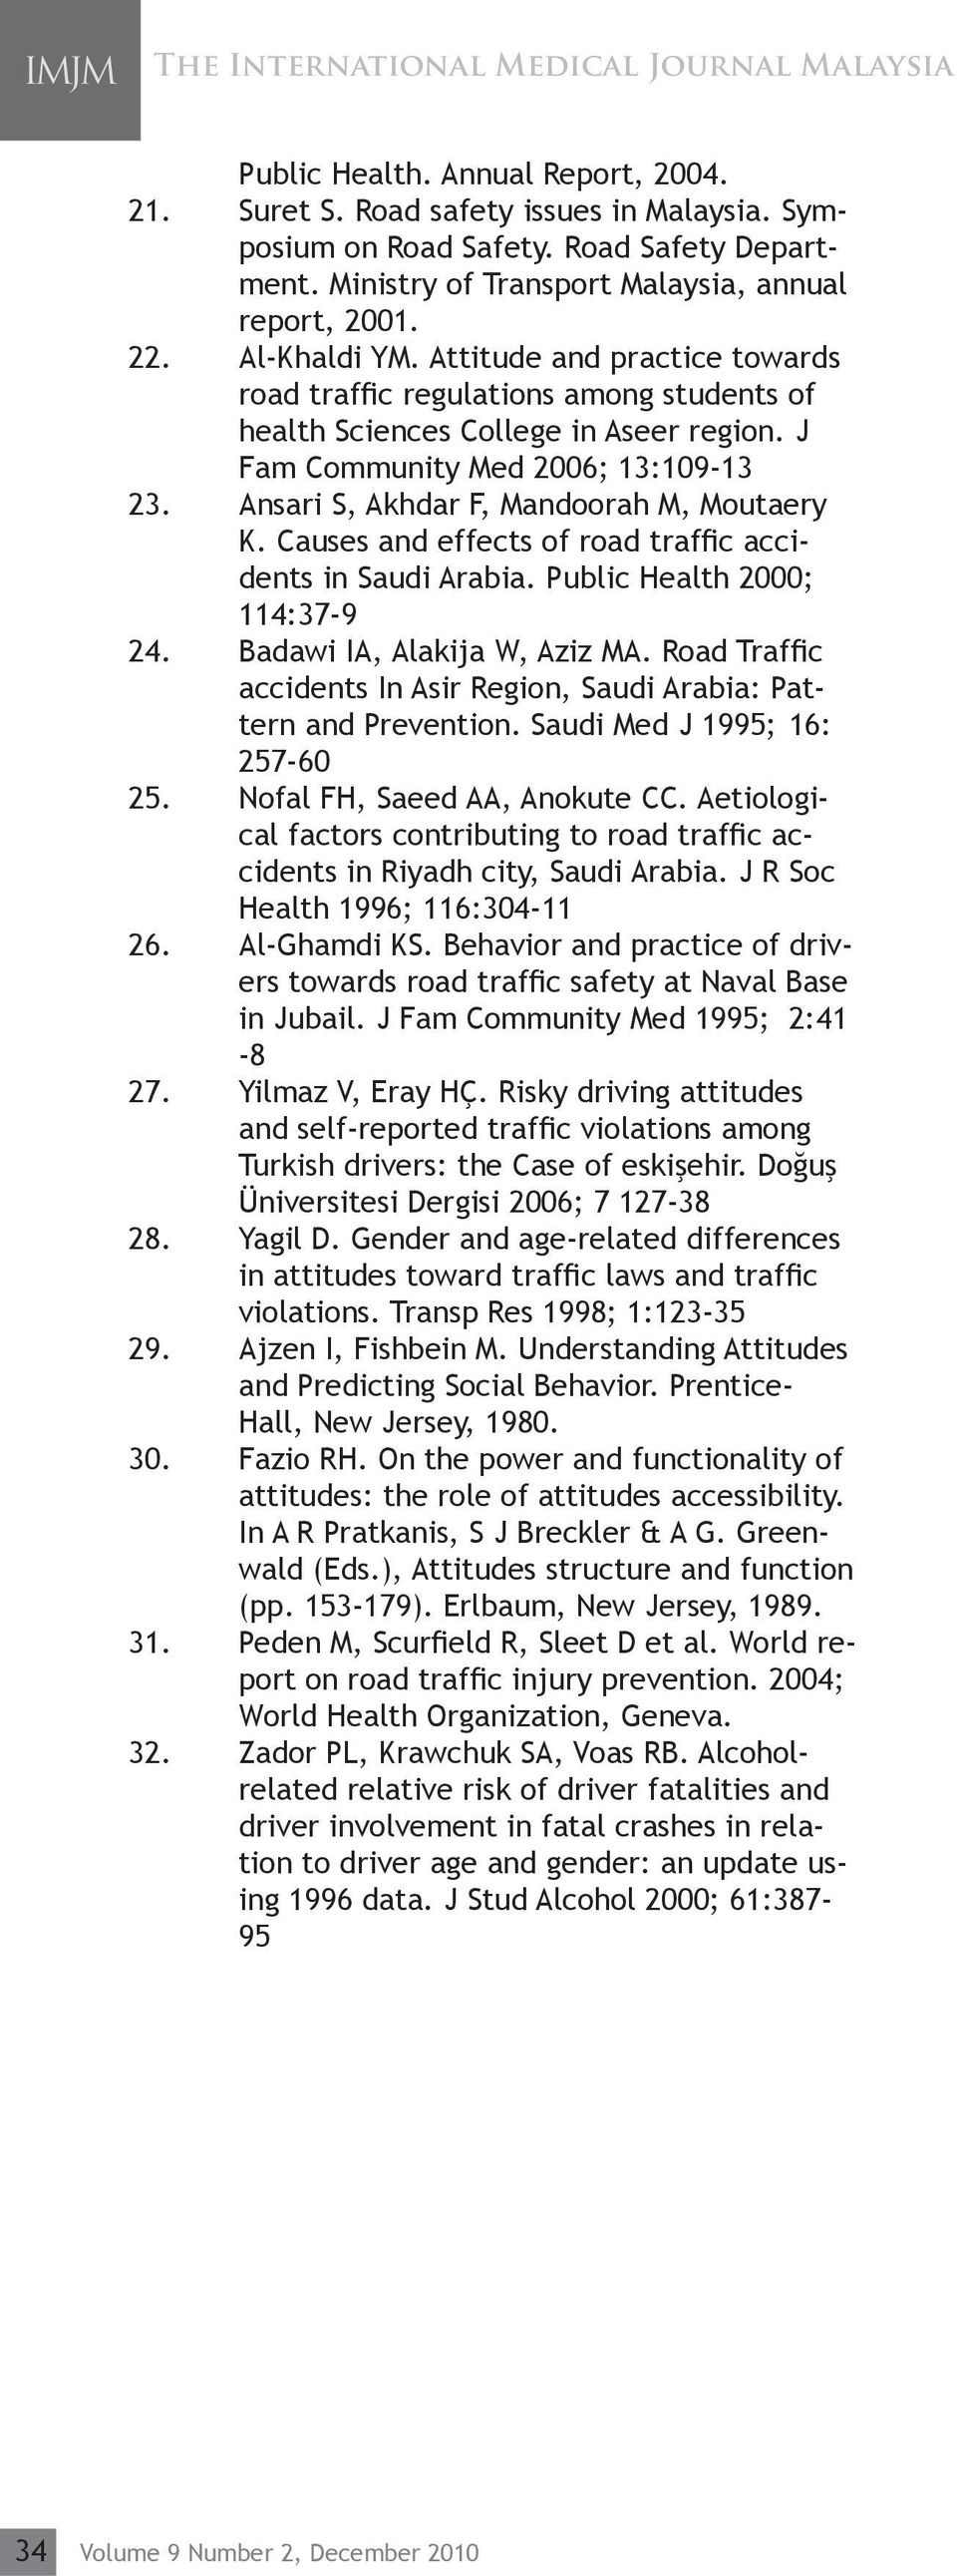 J Fam Community Med 2006; 13:109-13 23. Ansari S, Akhdar F, Mandoorah M, Moutaery K. Causes and effects of road traffic accidents in Saudi Arabia. Public Health 2000; 114:37-9 24.